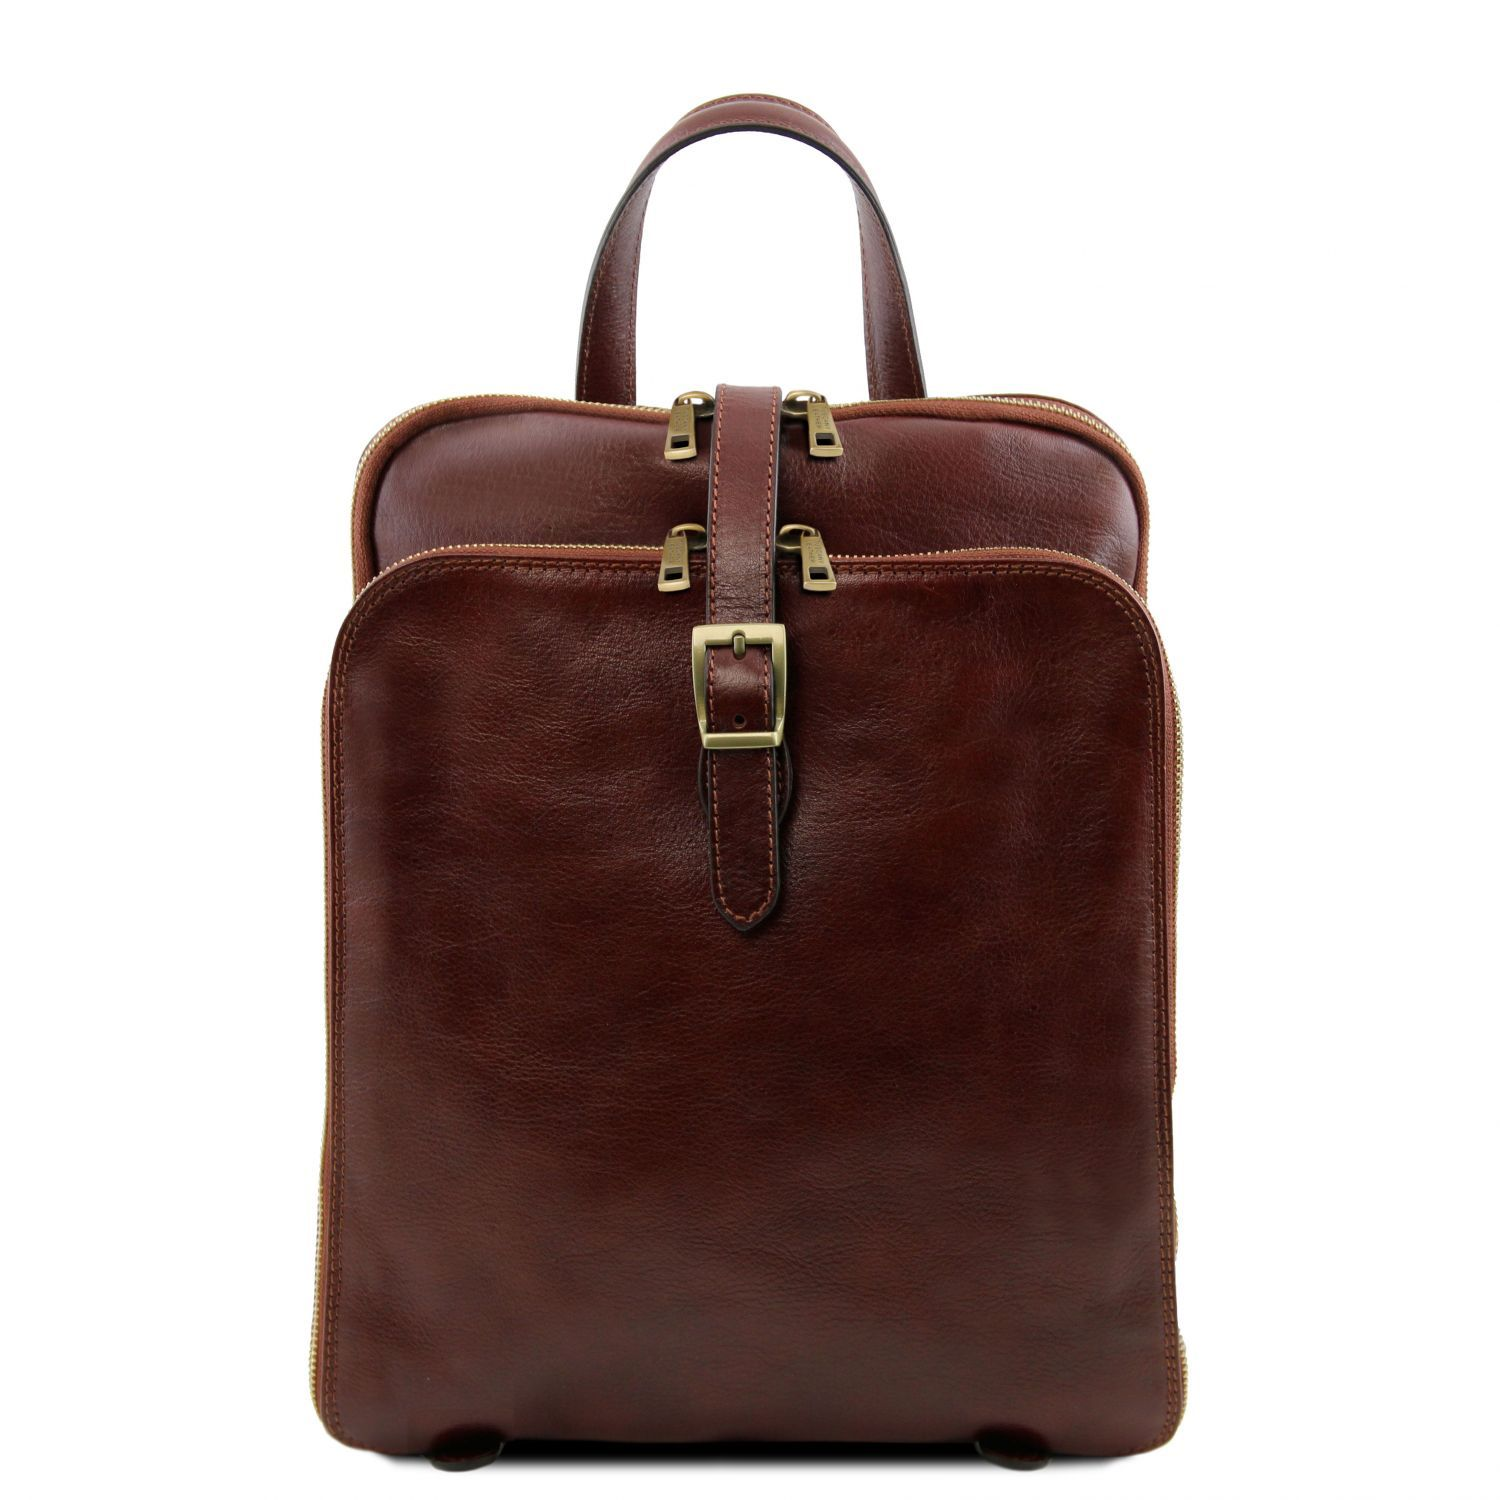 Zdjęcie 3 Compartments leather backpack Brown